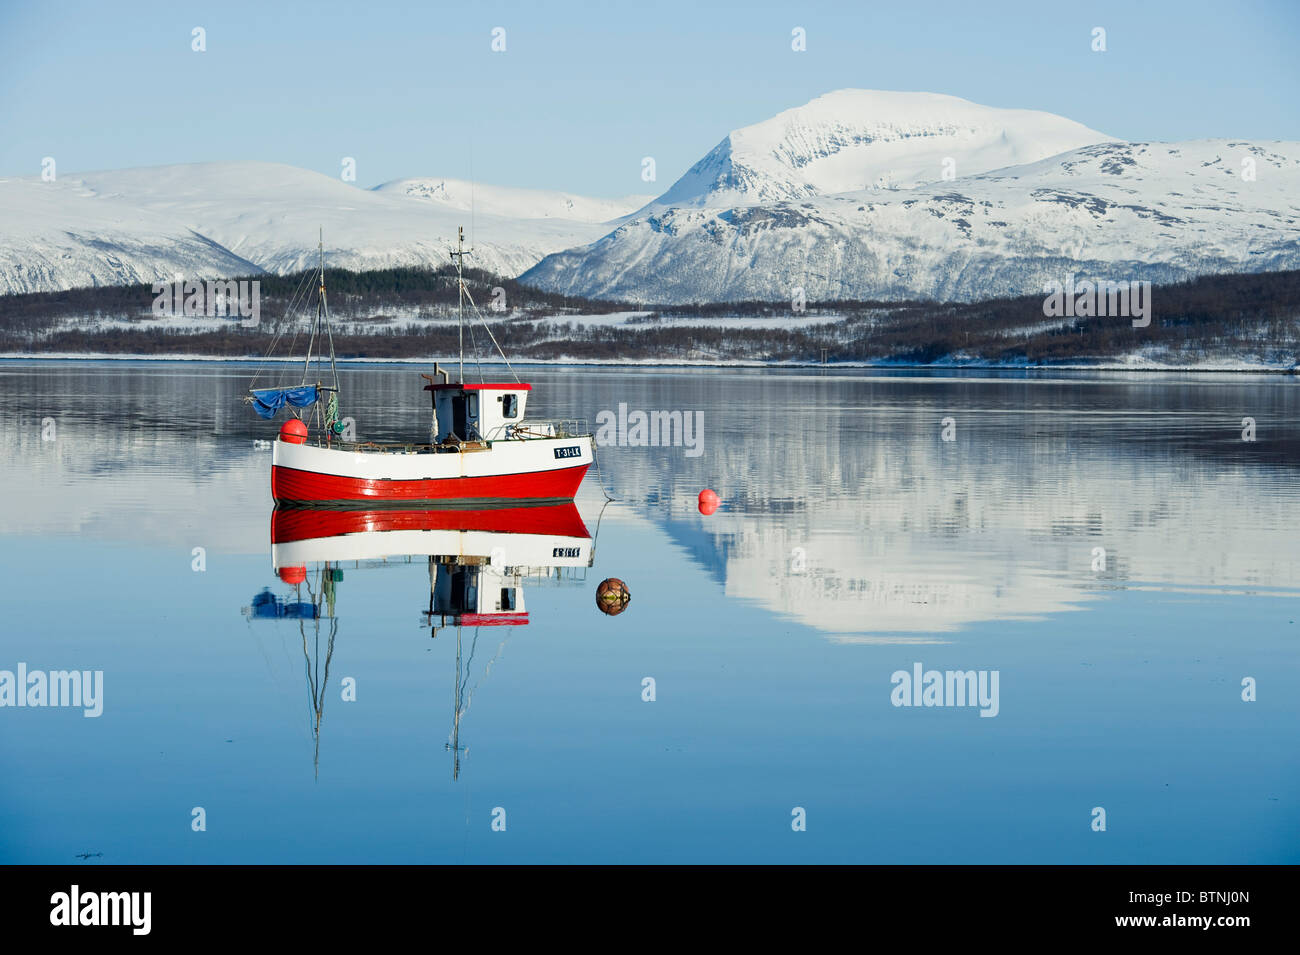 Small red smack, fisherman's boat, on a calm sea. The mountain Tromsdalstinden in the background. Tromso, North - Stock Image